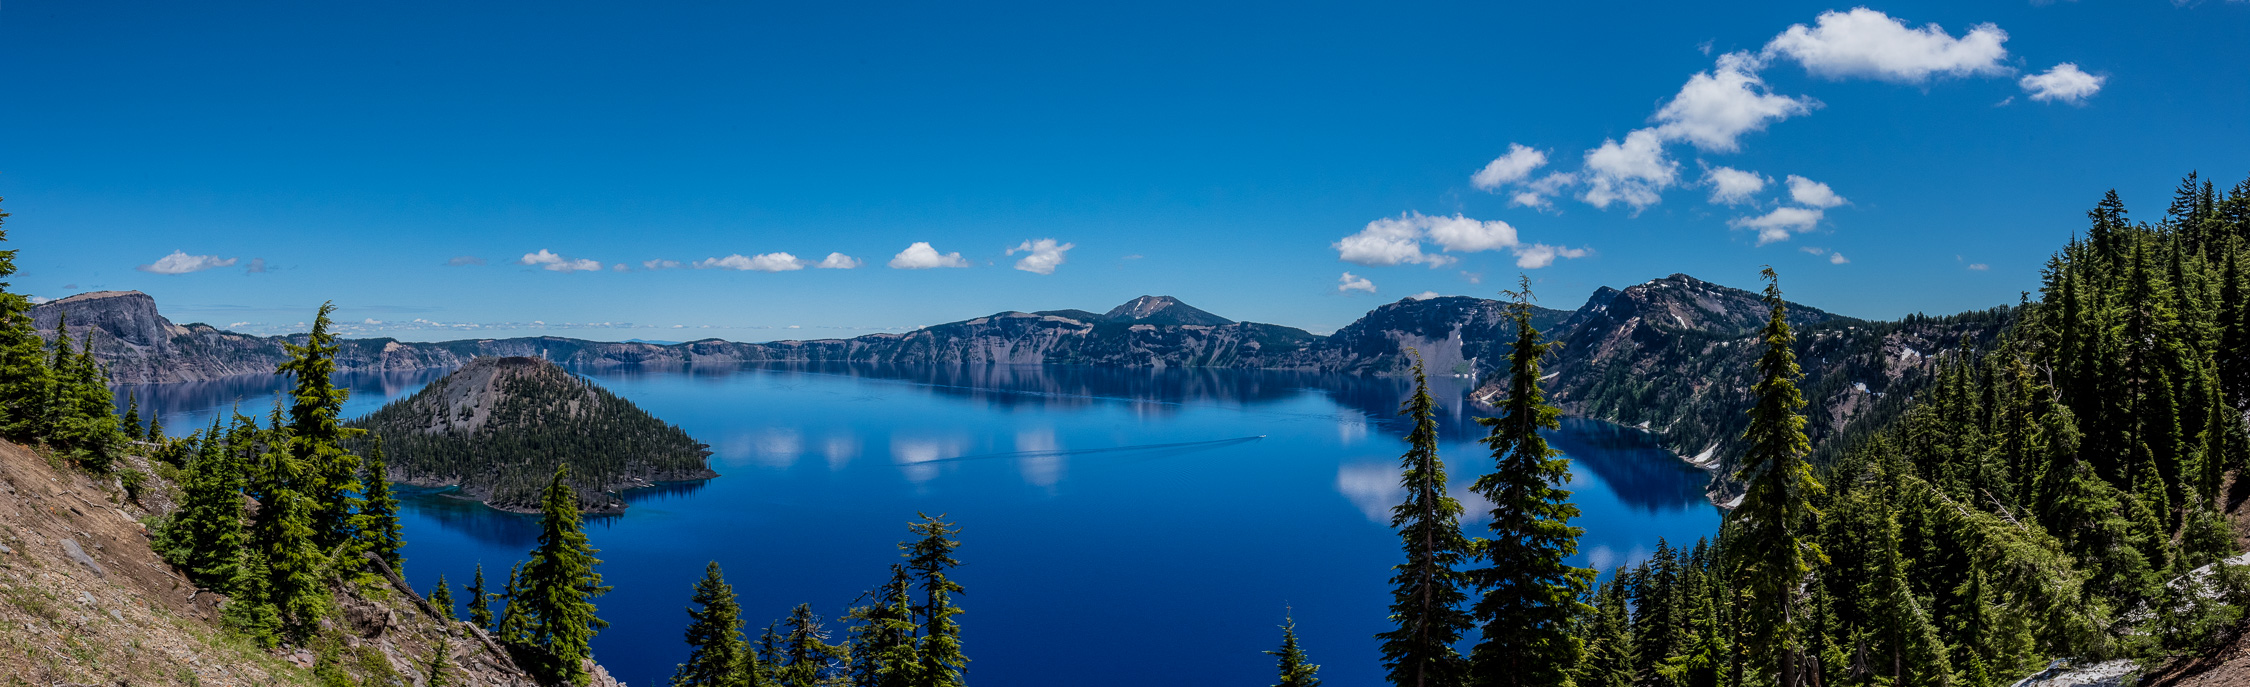 Portland -  Redwoods - Crater Lake - Gregory Nolan -  07.06.16-18.jpg